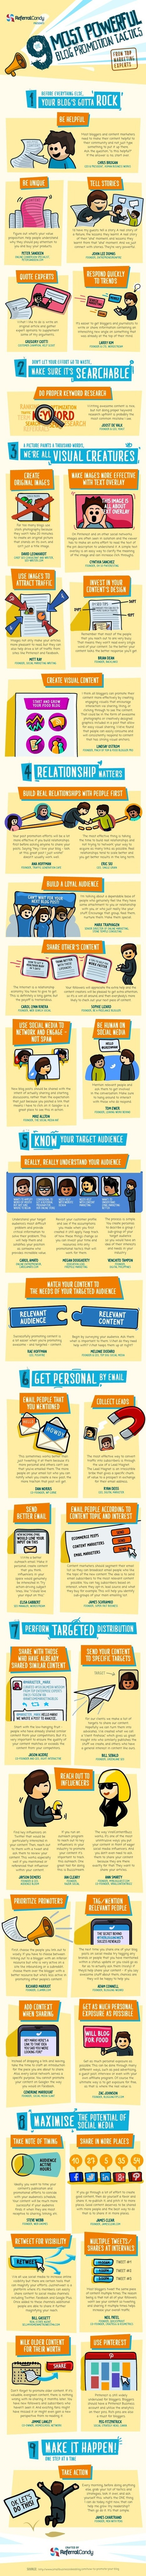 The 9 Most Powerful Blog Promotion Tactics From Top Marketing Experts [Infographic] - ReferralCandy | My Blog 2016 | Scoop.it